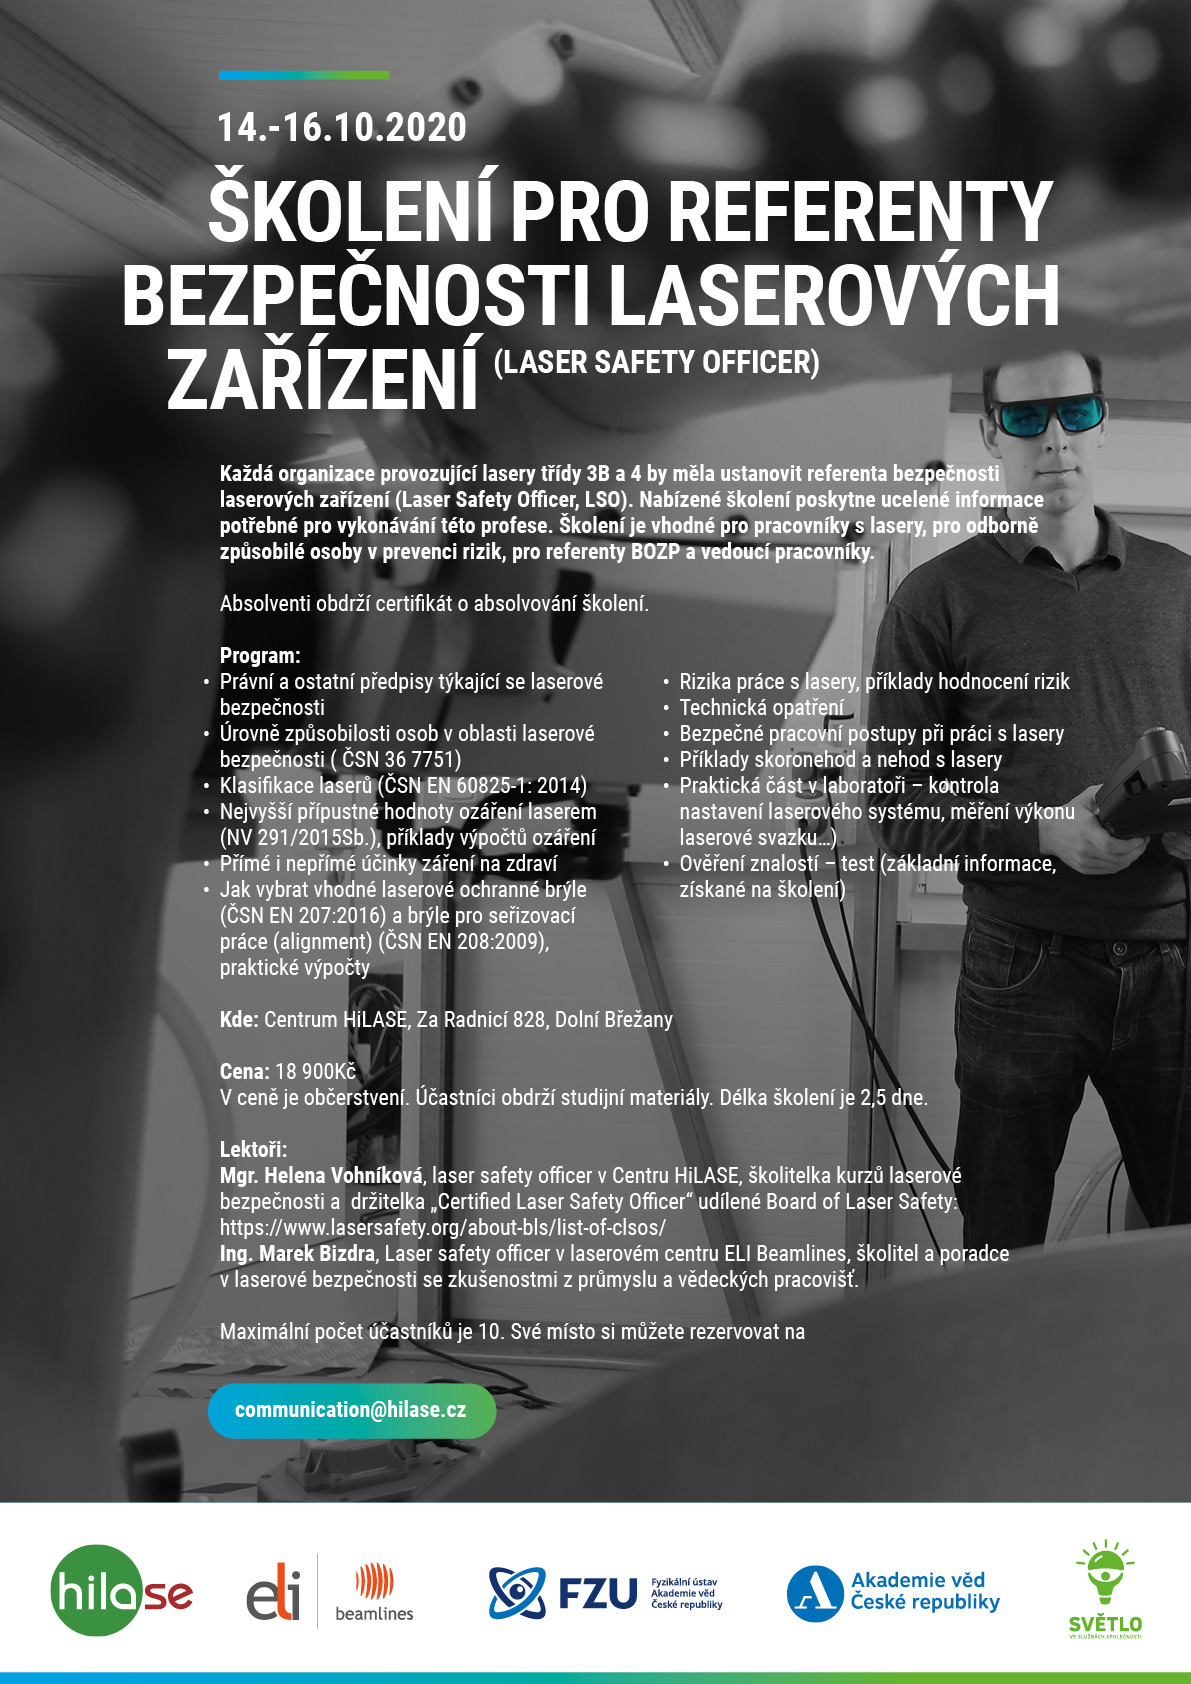 HiLASE_Skoleni-Laser-Safety-Officer_A4_20200612.jpg